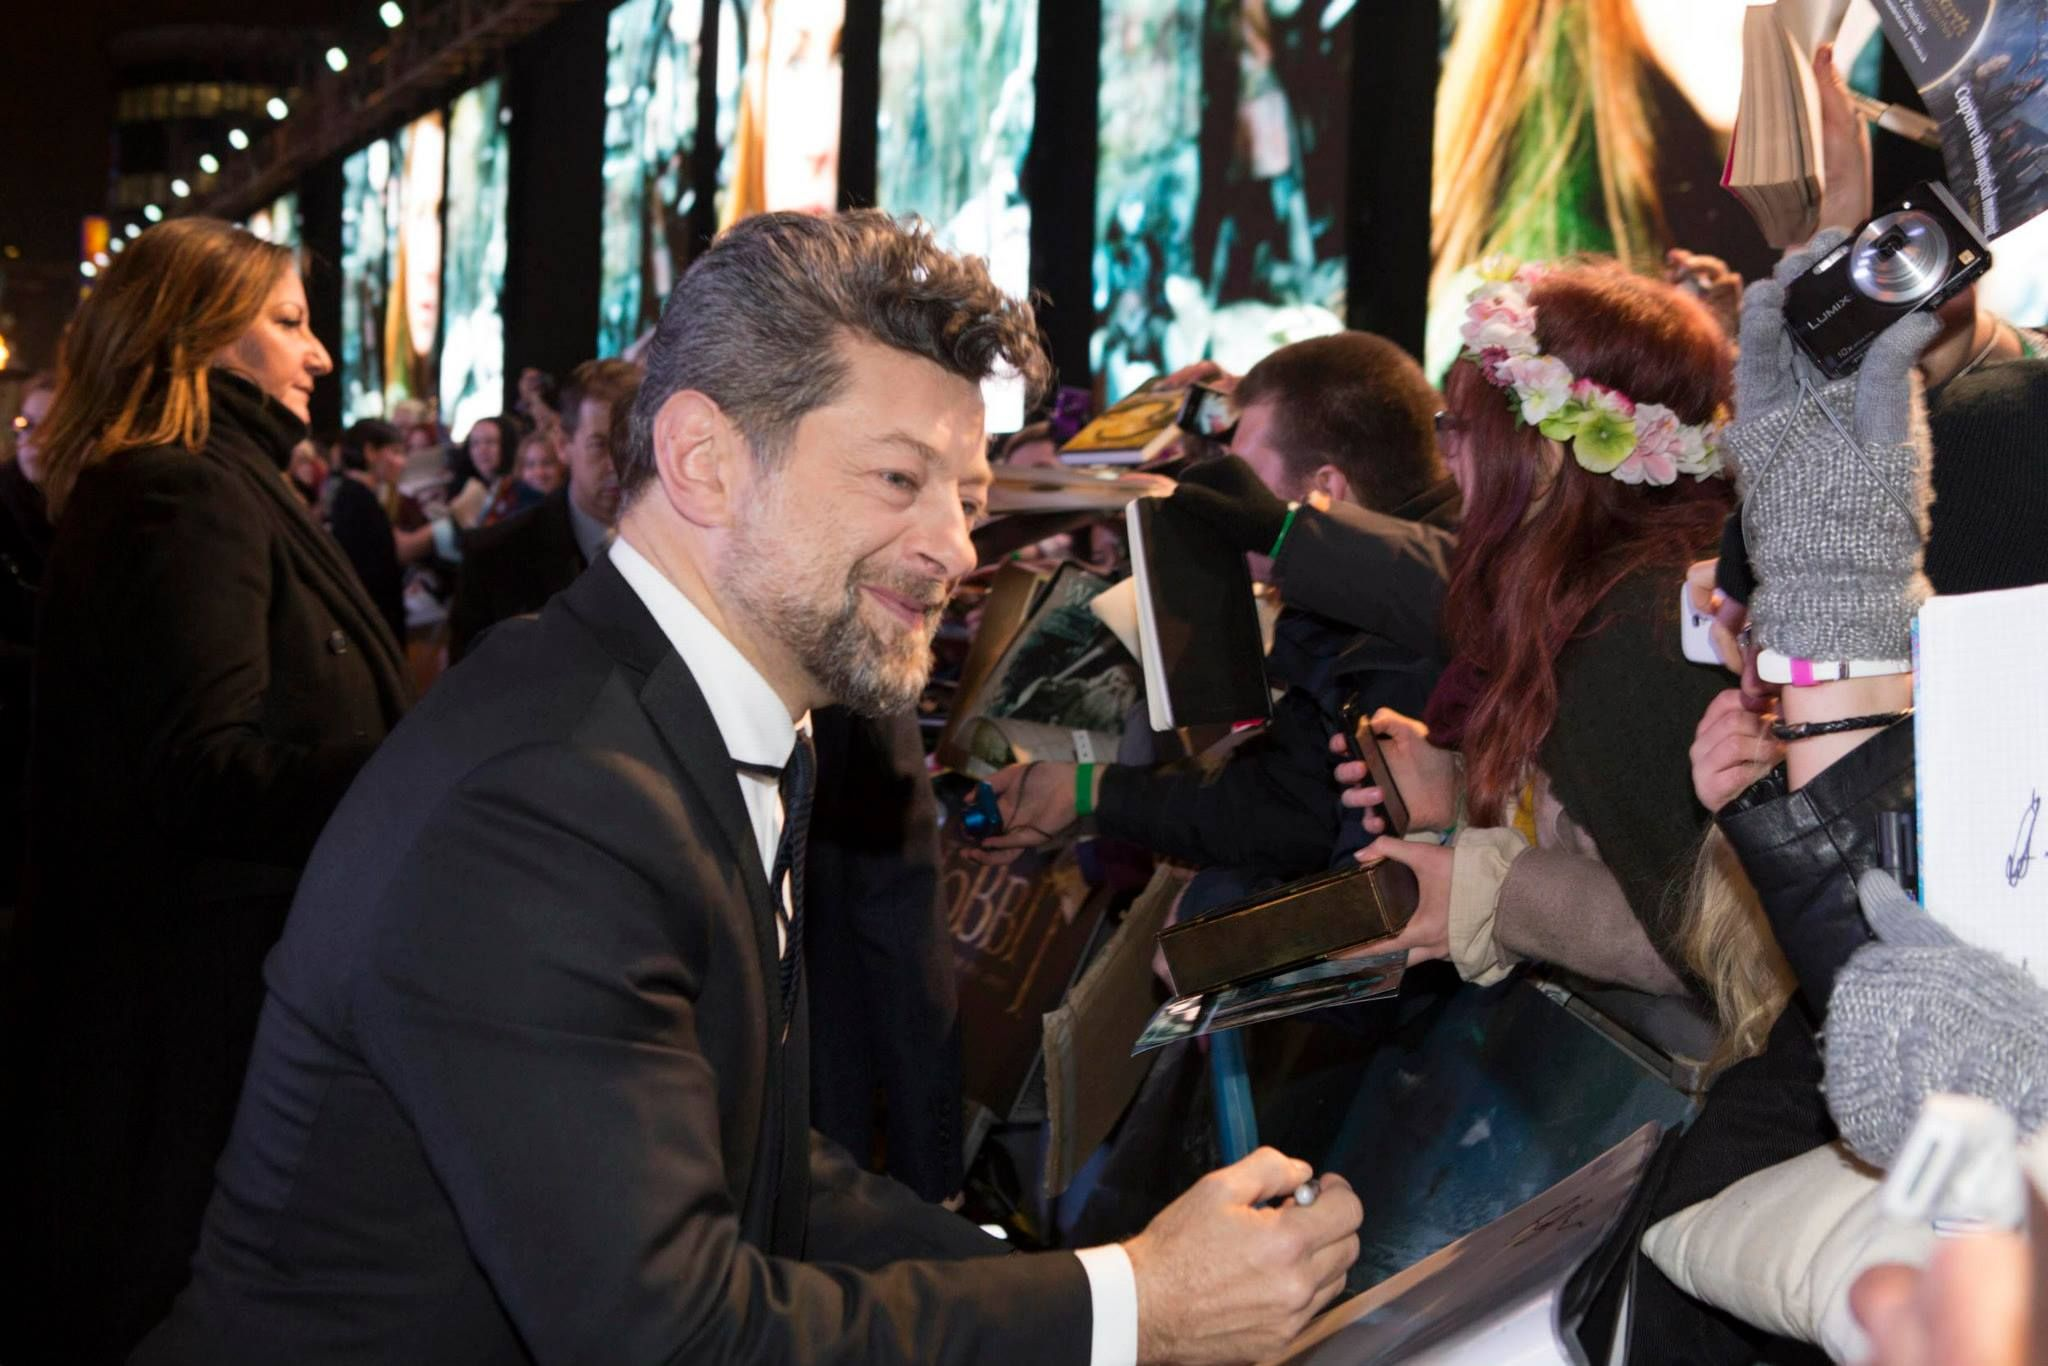 Andy Serkis (Gollum) at London premiere of BOFA